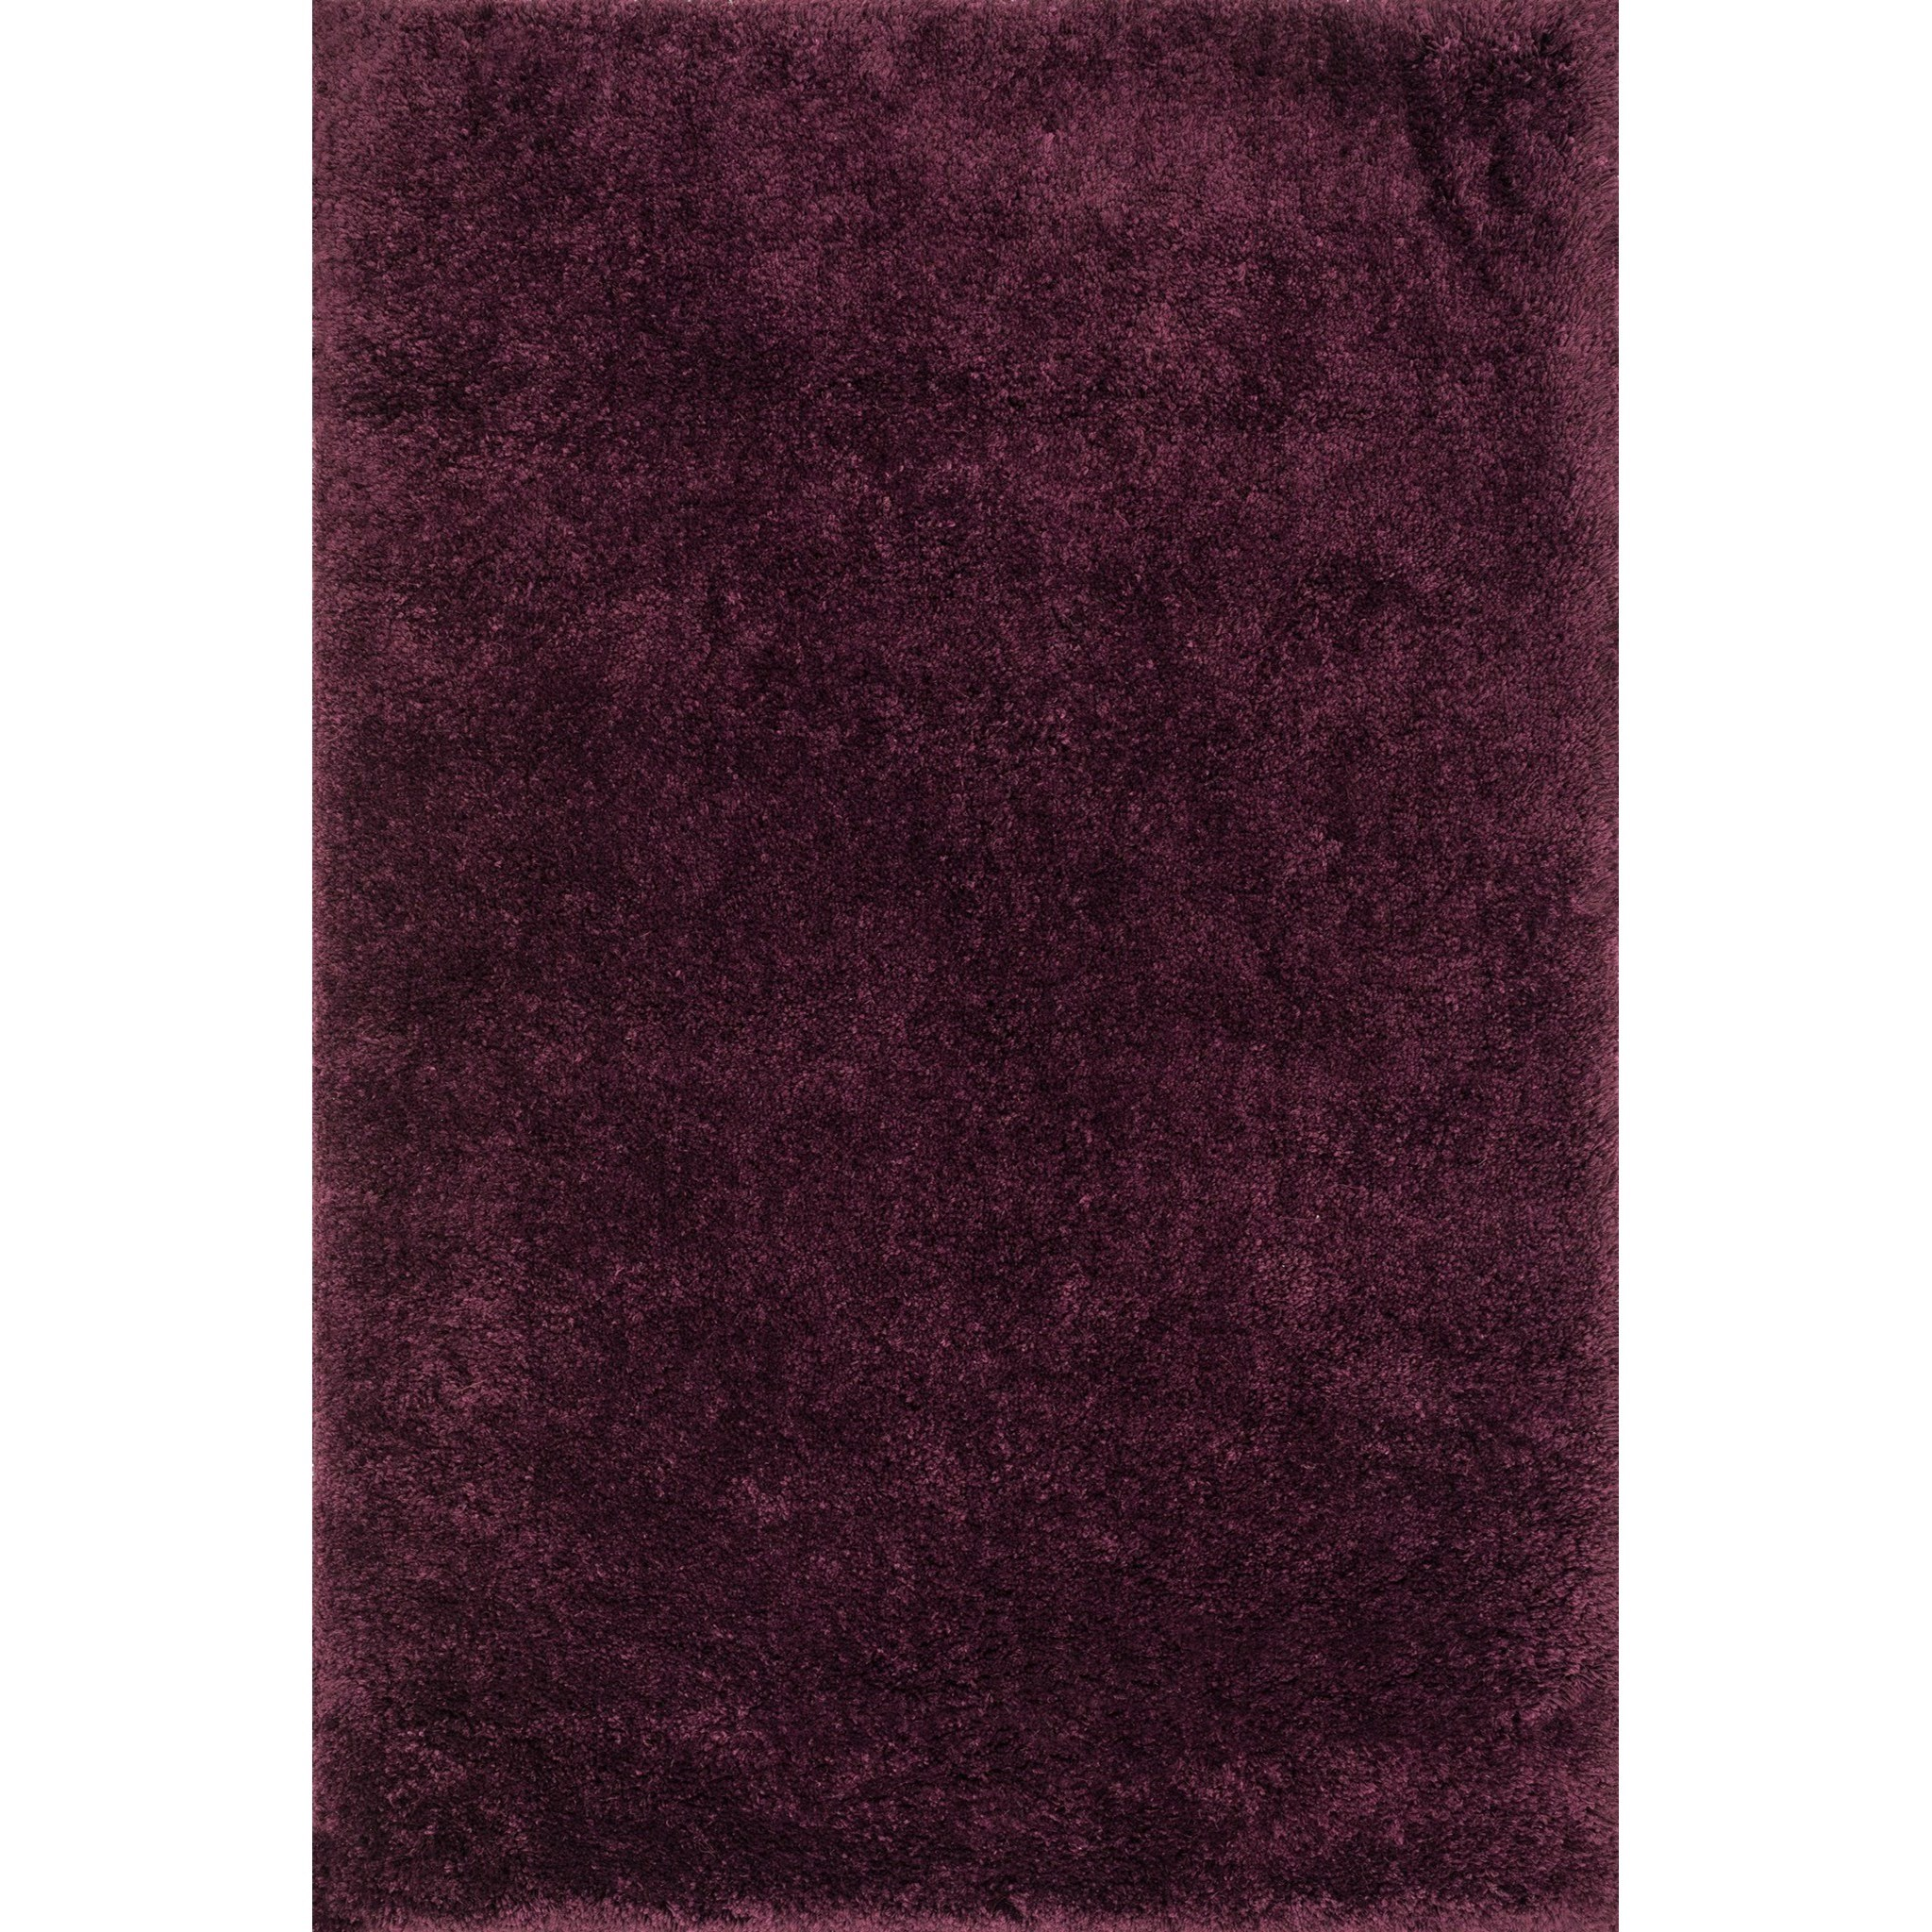 "Cozy Shag 7'-10"" x 11'-0"" Area Rug by Loloi Rugs at Belfort Furniture"